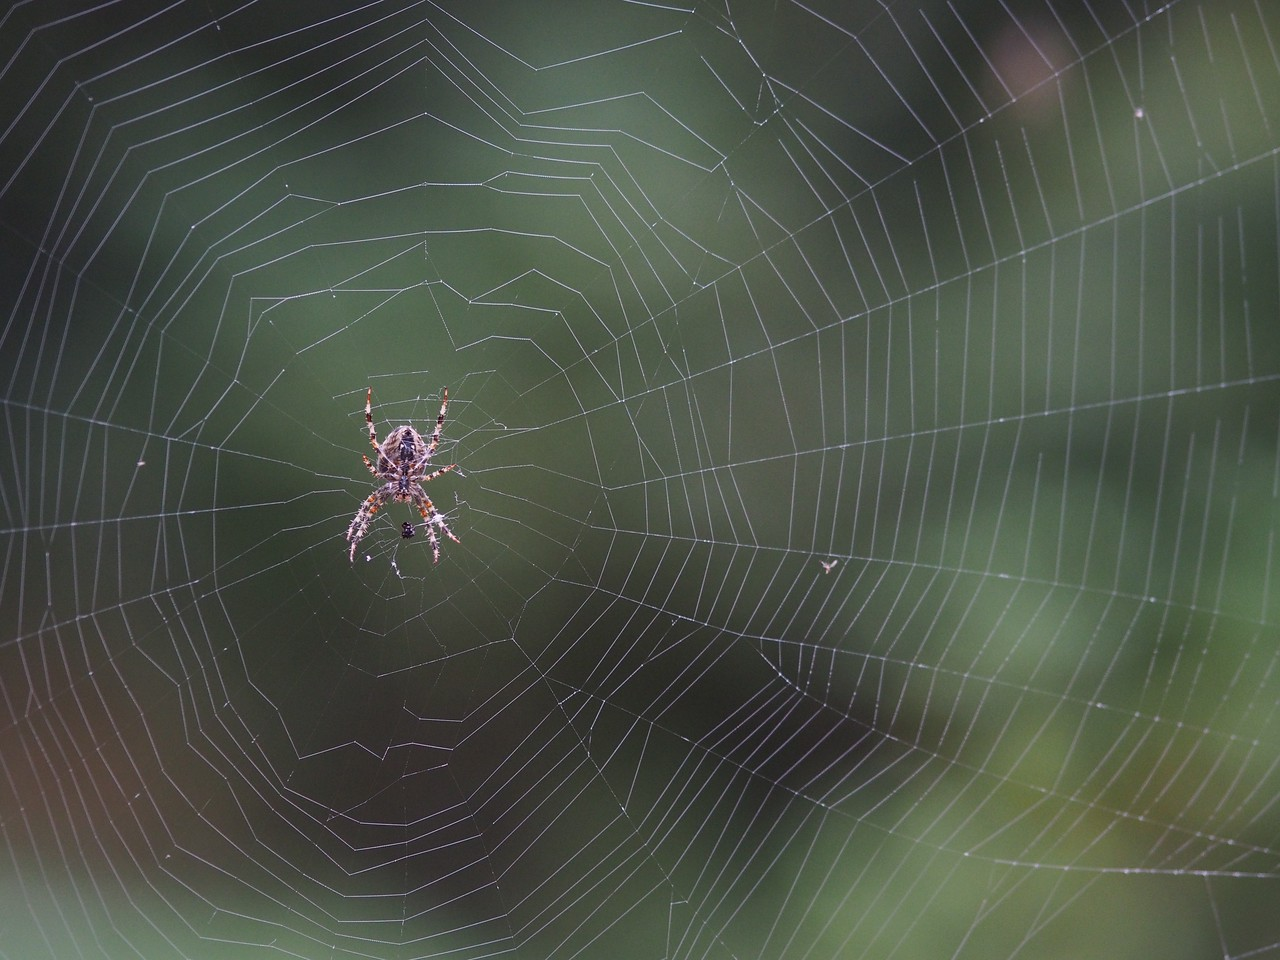 2013 29 Sept Spiders TOO 21